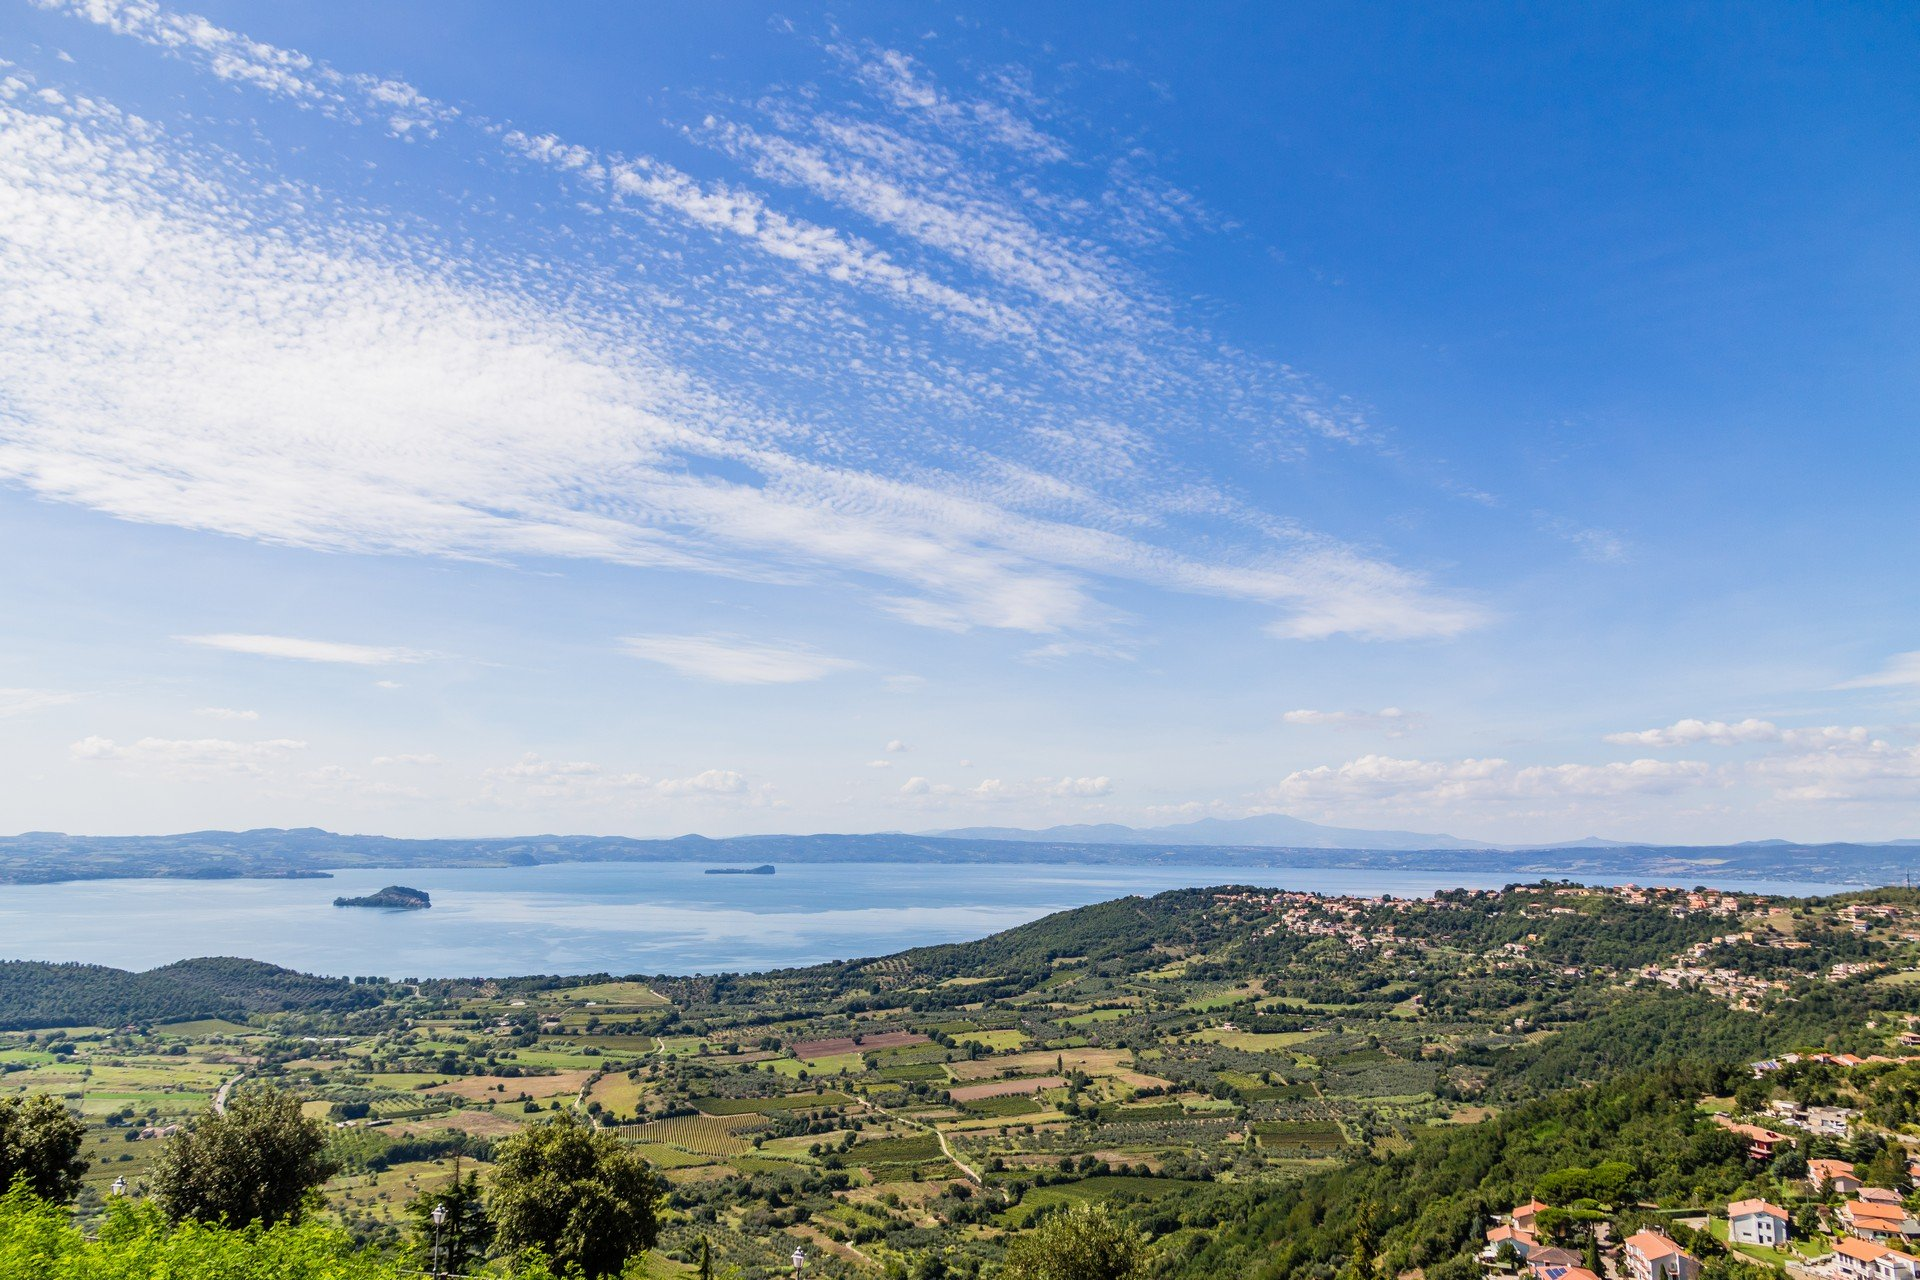 view of lake Bolsena, Italy